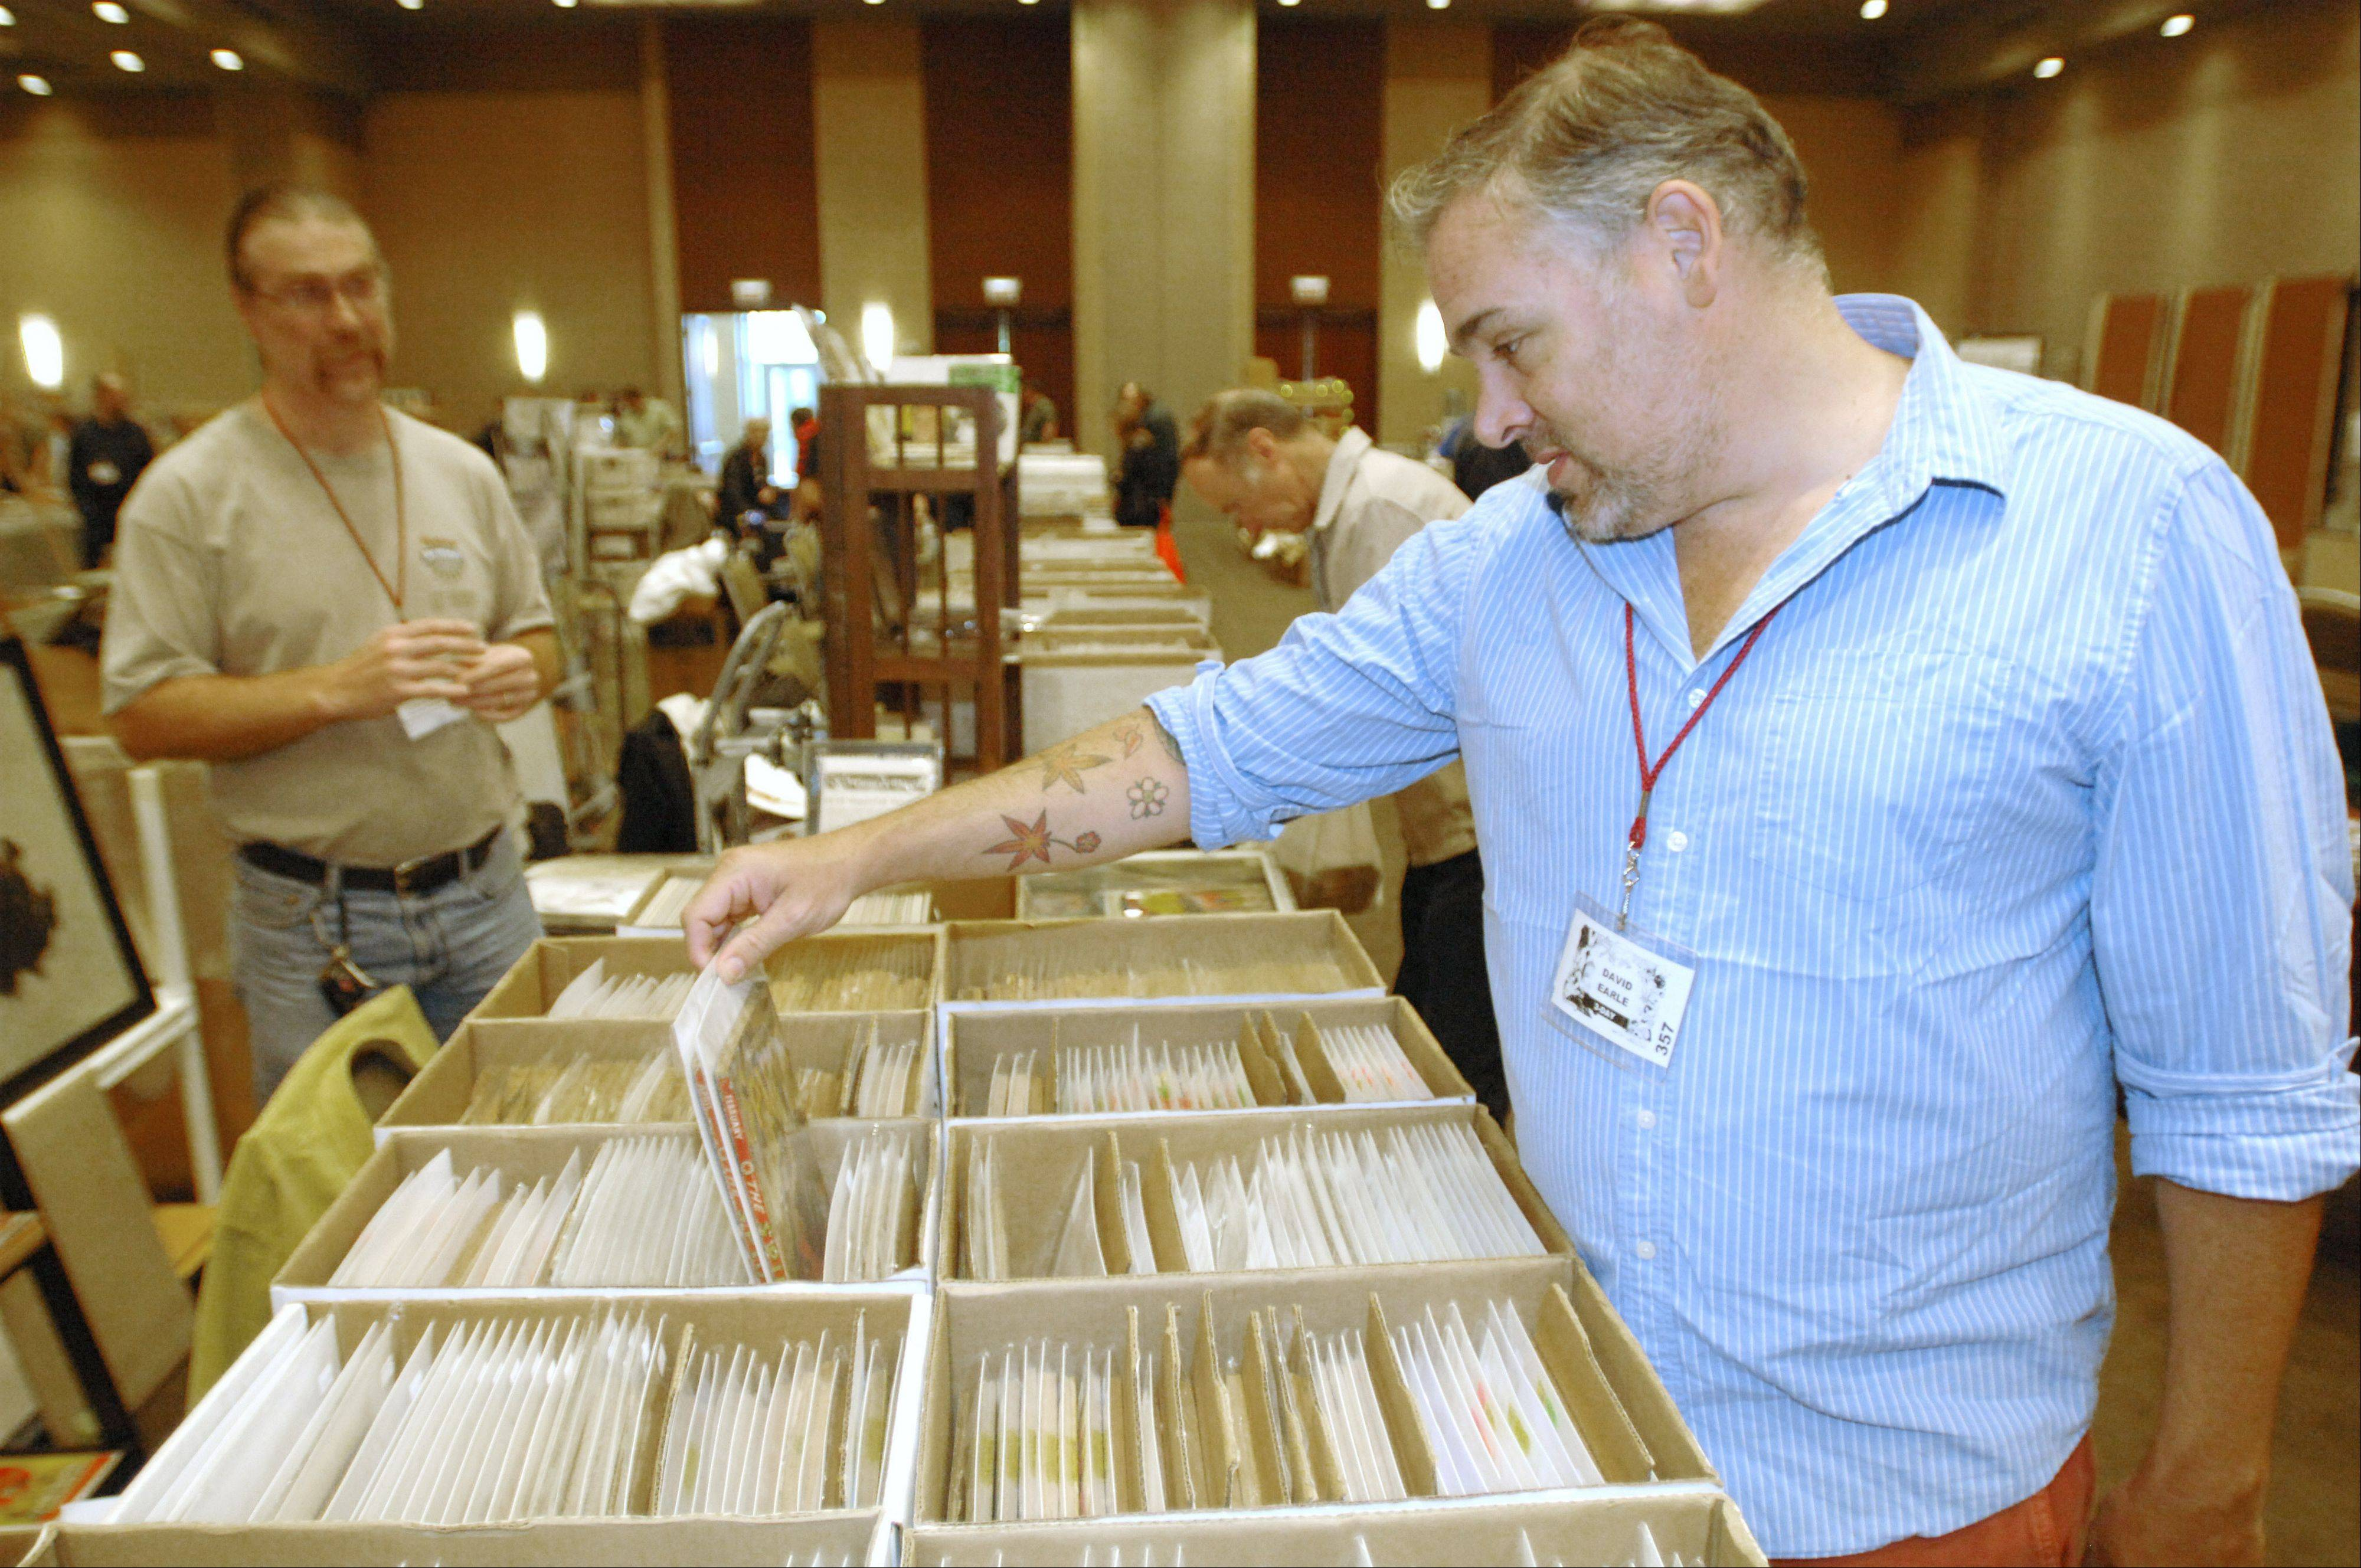 David Earle traveled from Florida for the Windy City Pulp and Paper Convention in Lombard this weekend. The event drew hundreds of collectors of classic pulp-fiction magazines.